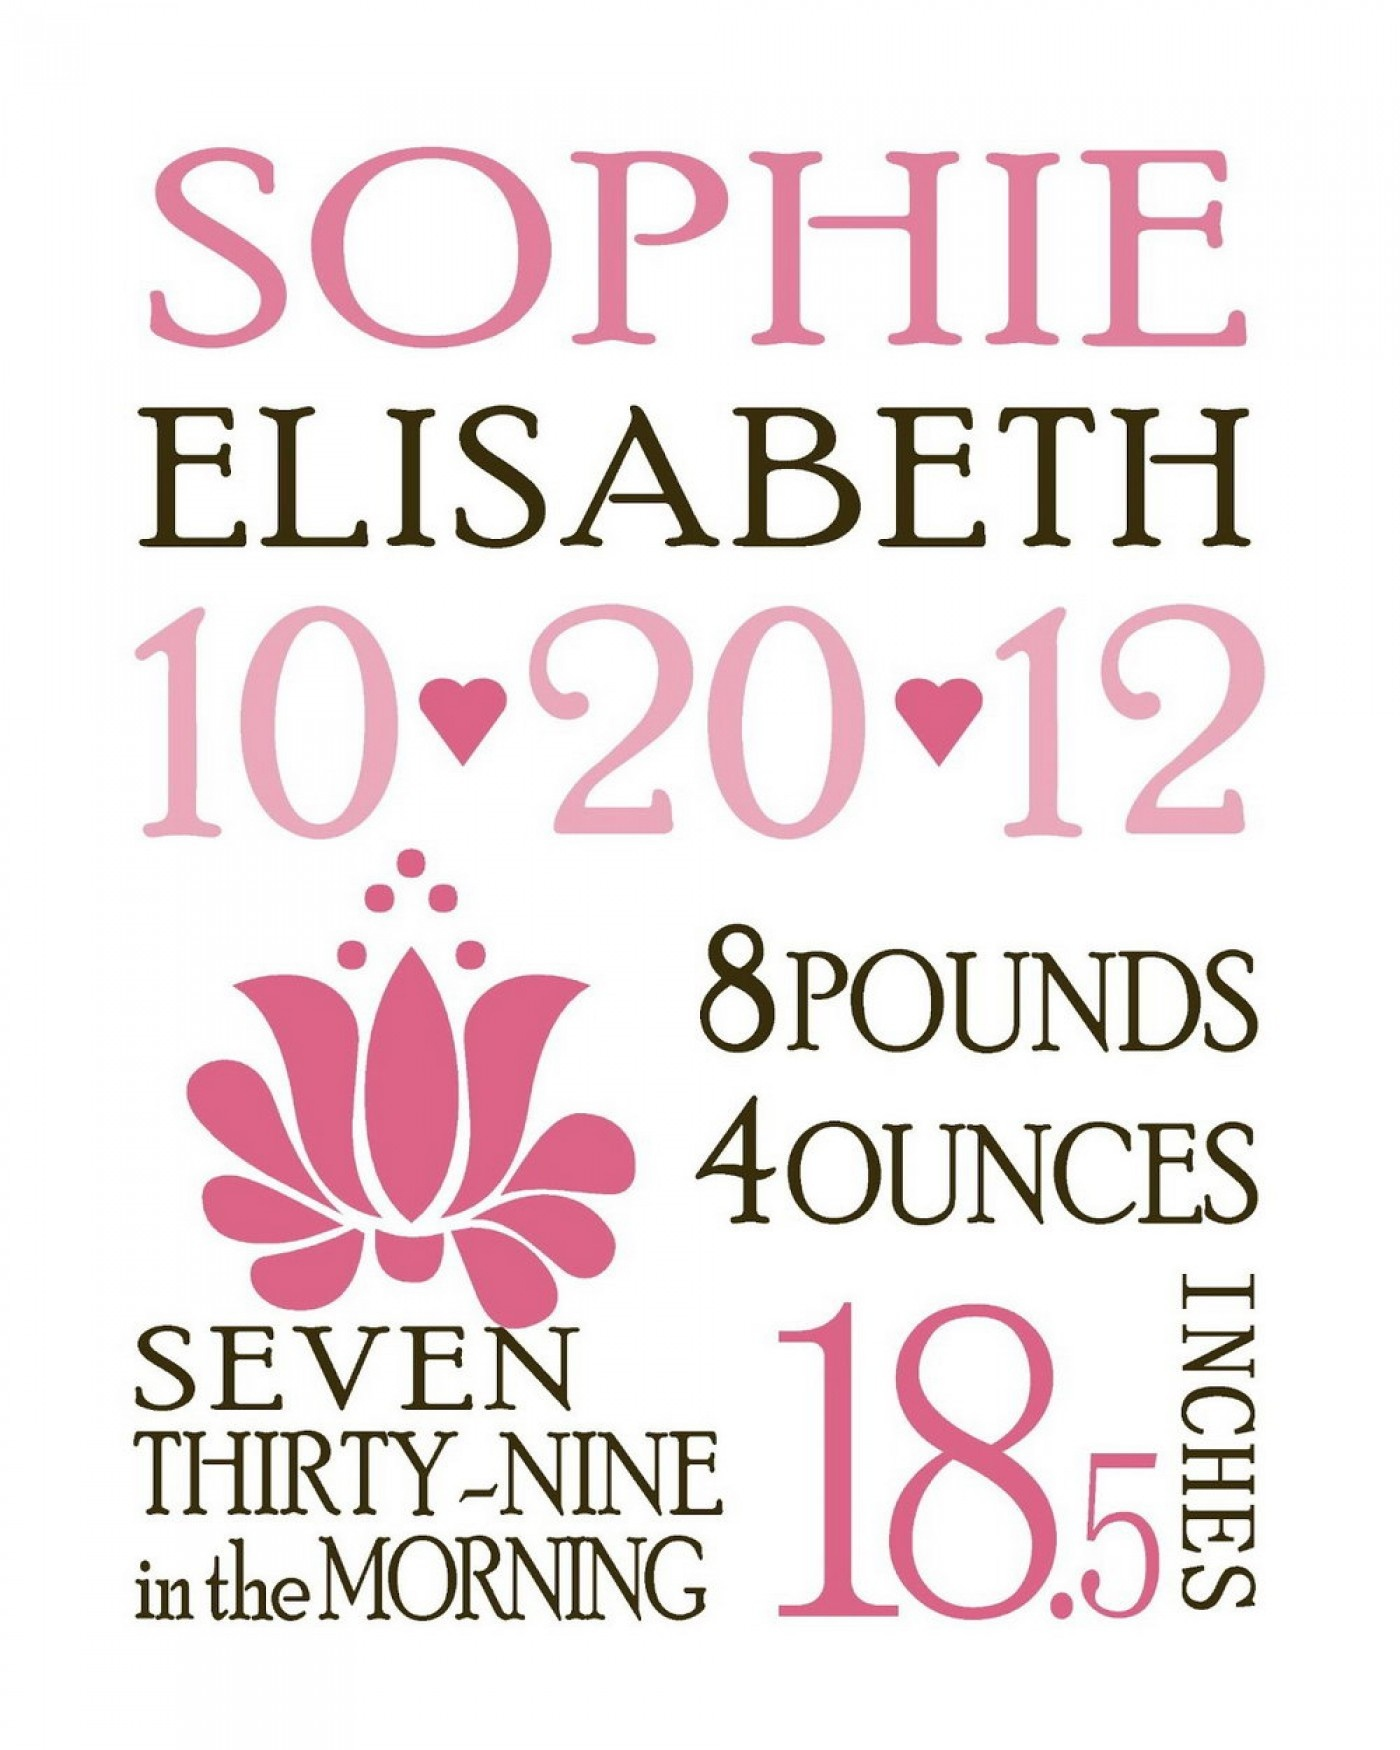 002 Free Birth Announcements Templates Template Ideas Phenomenal Diy - Free Birth Announcements Printable